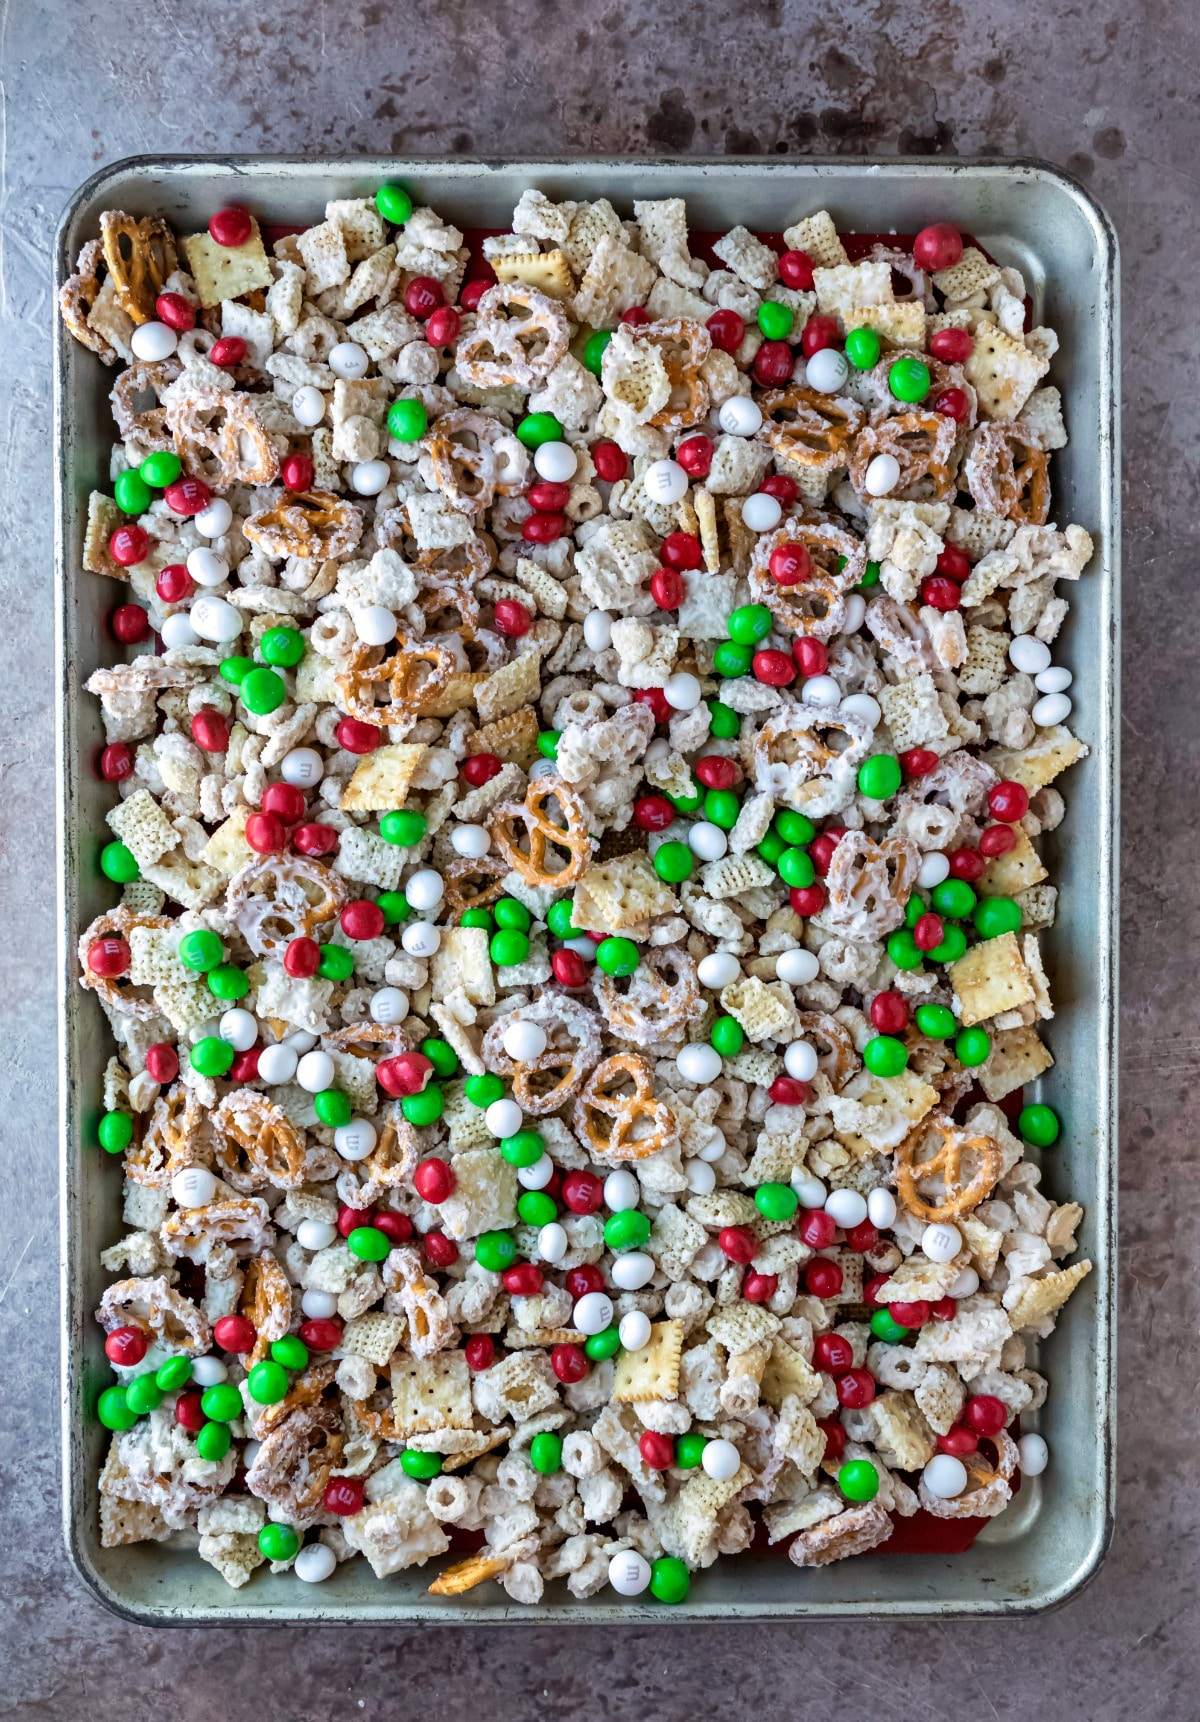 White chocolate party mix on a rimmed baking sheet